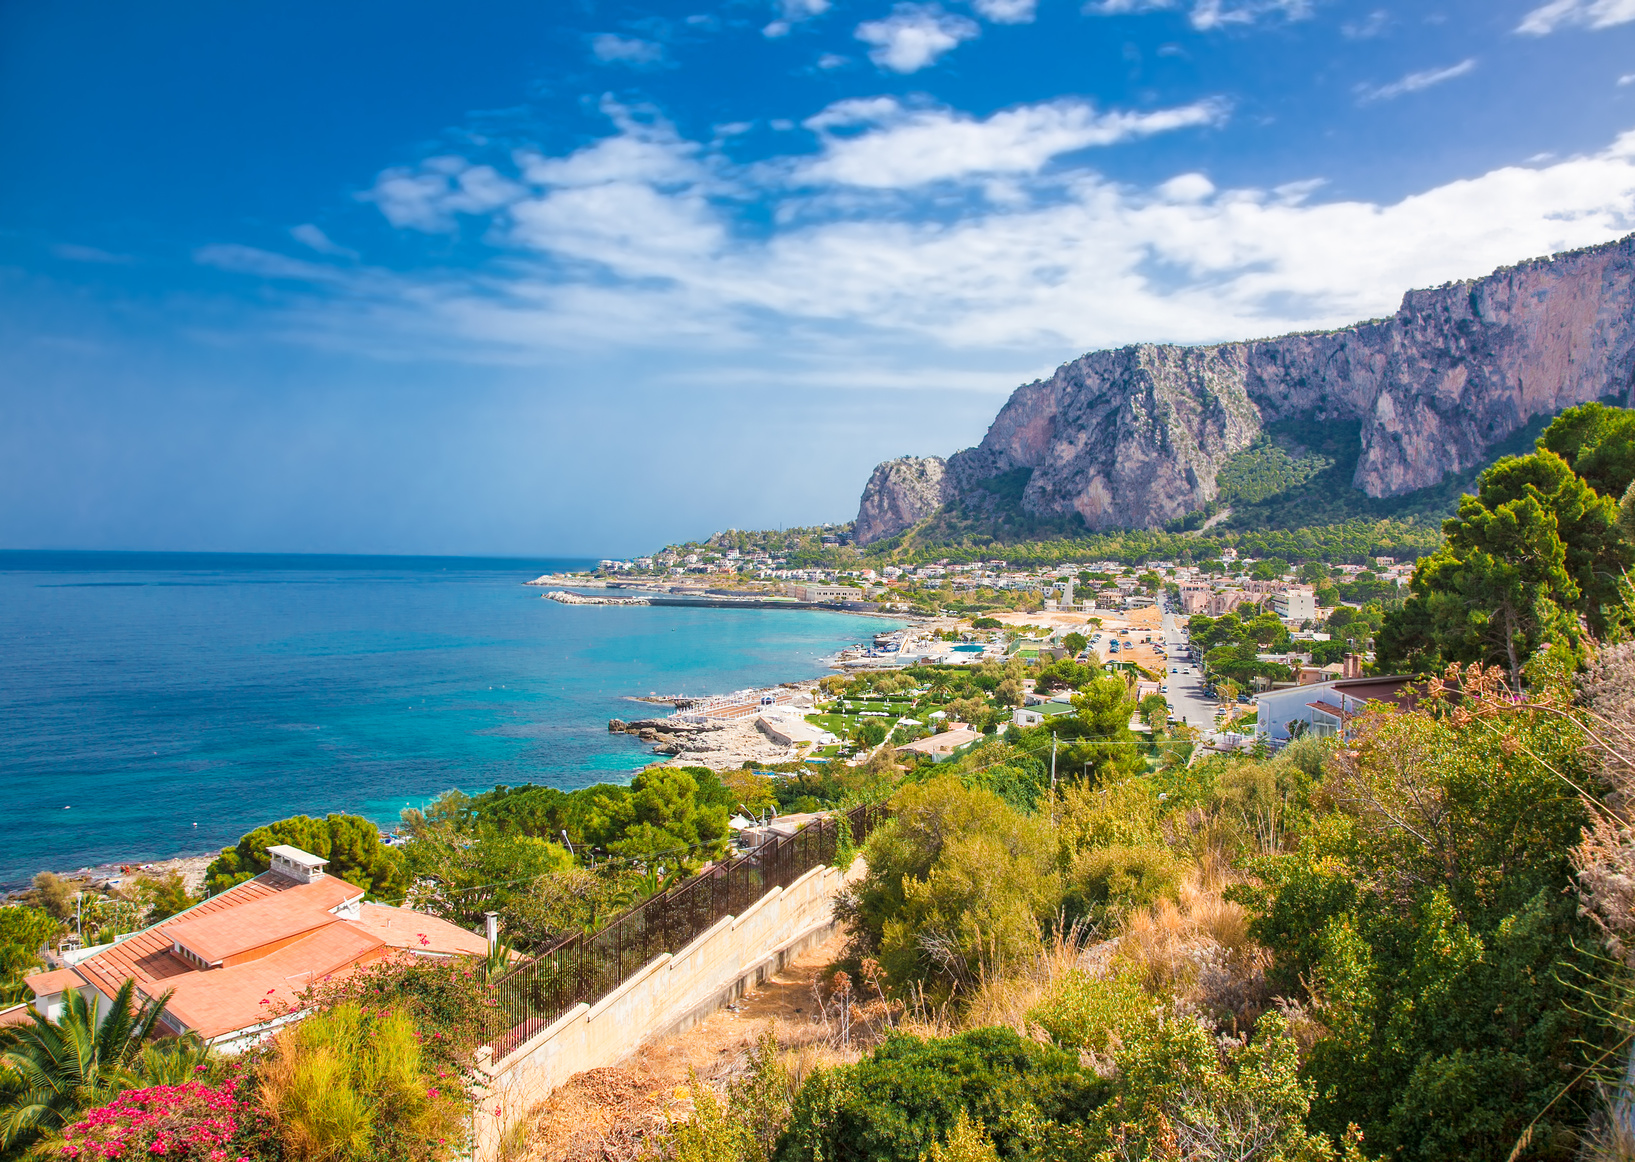 Mondello Bay in Palermo, Sizilien, Italien